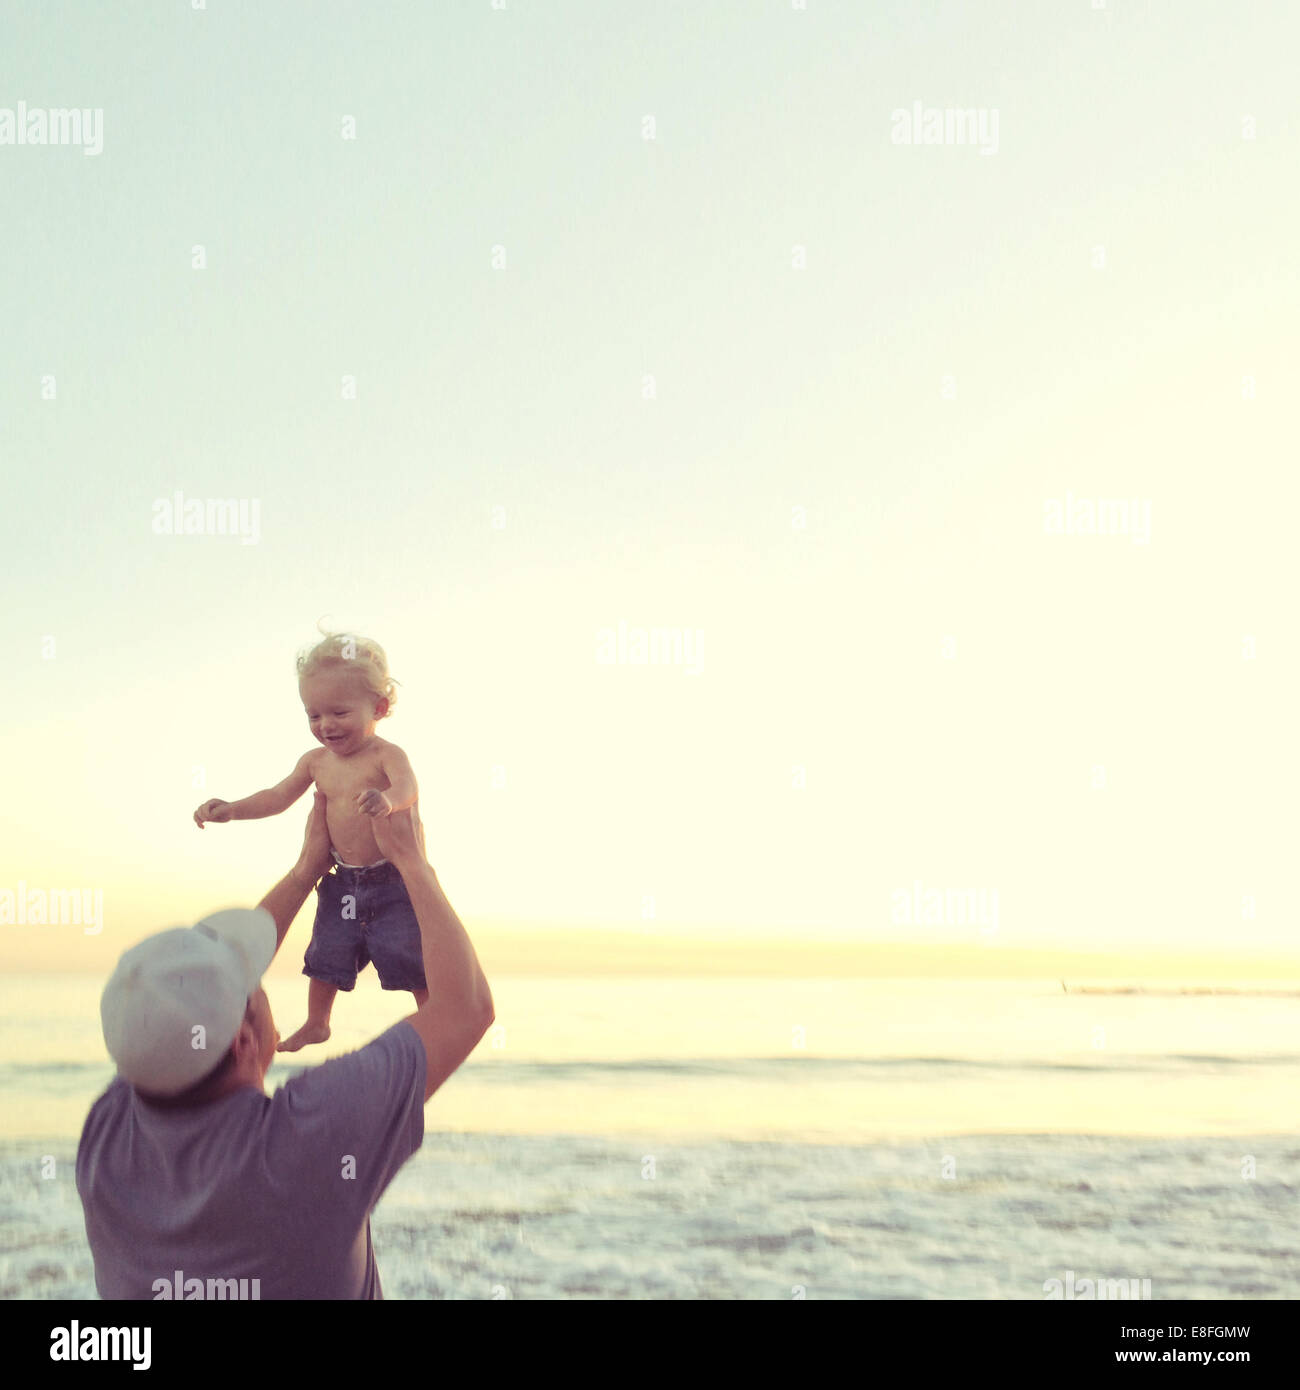 Père de lever son fils bébé dans l'air à la plage, en Californie, l'Amérique, USA Photo Stock